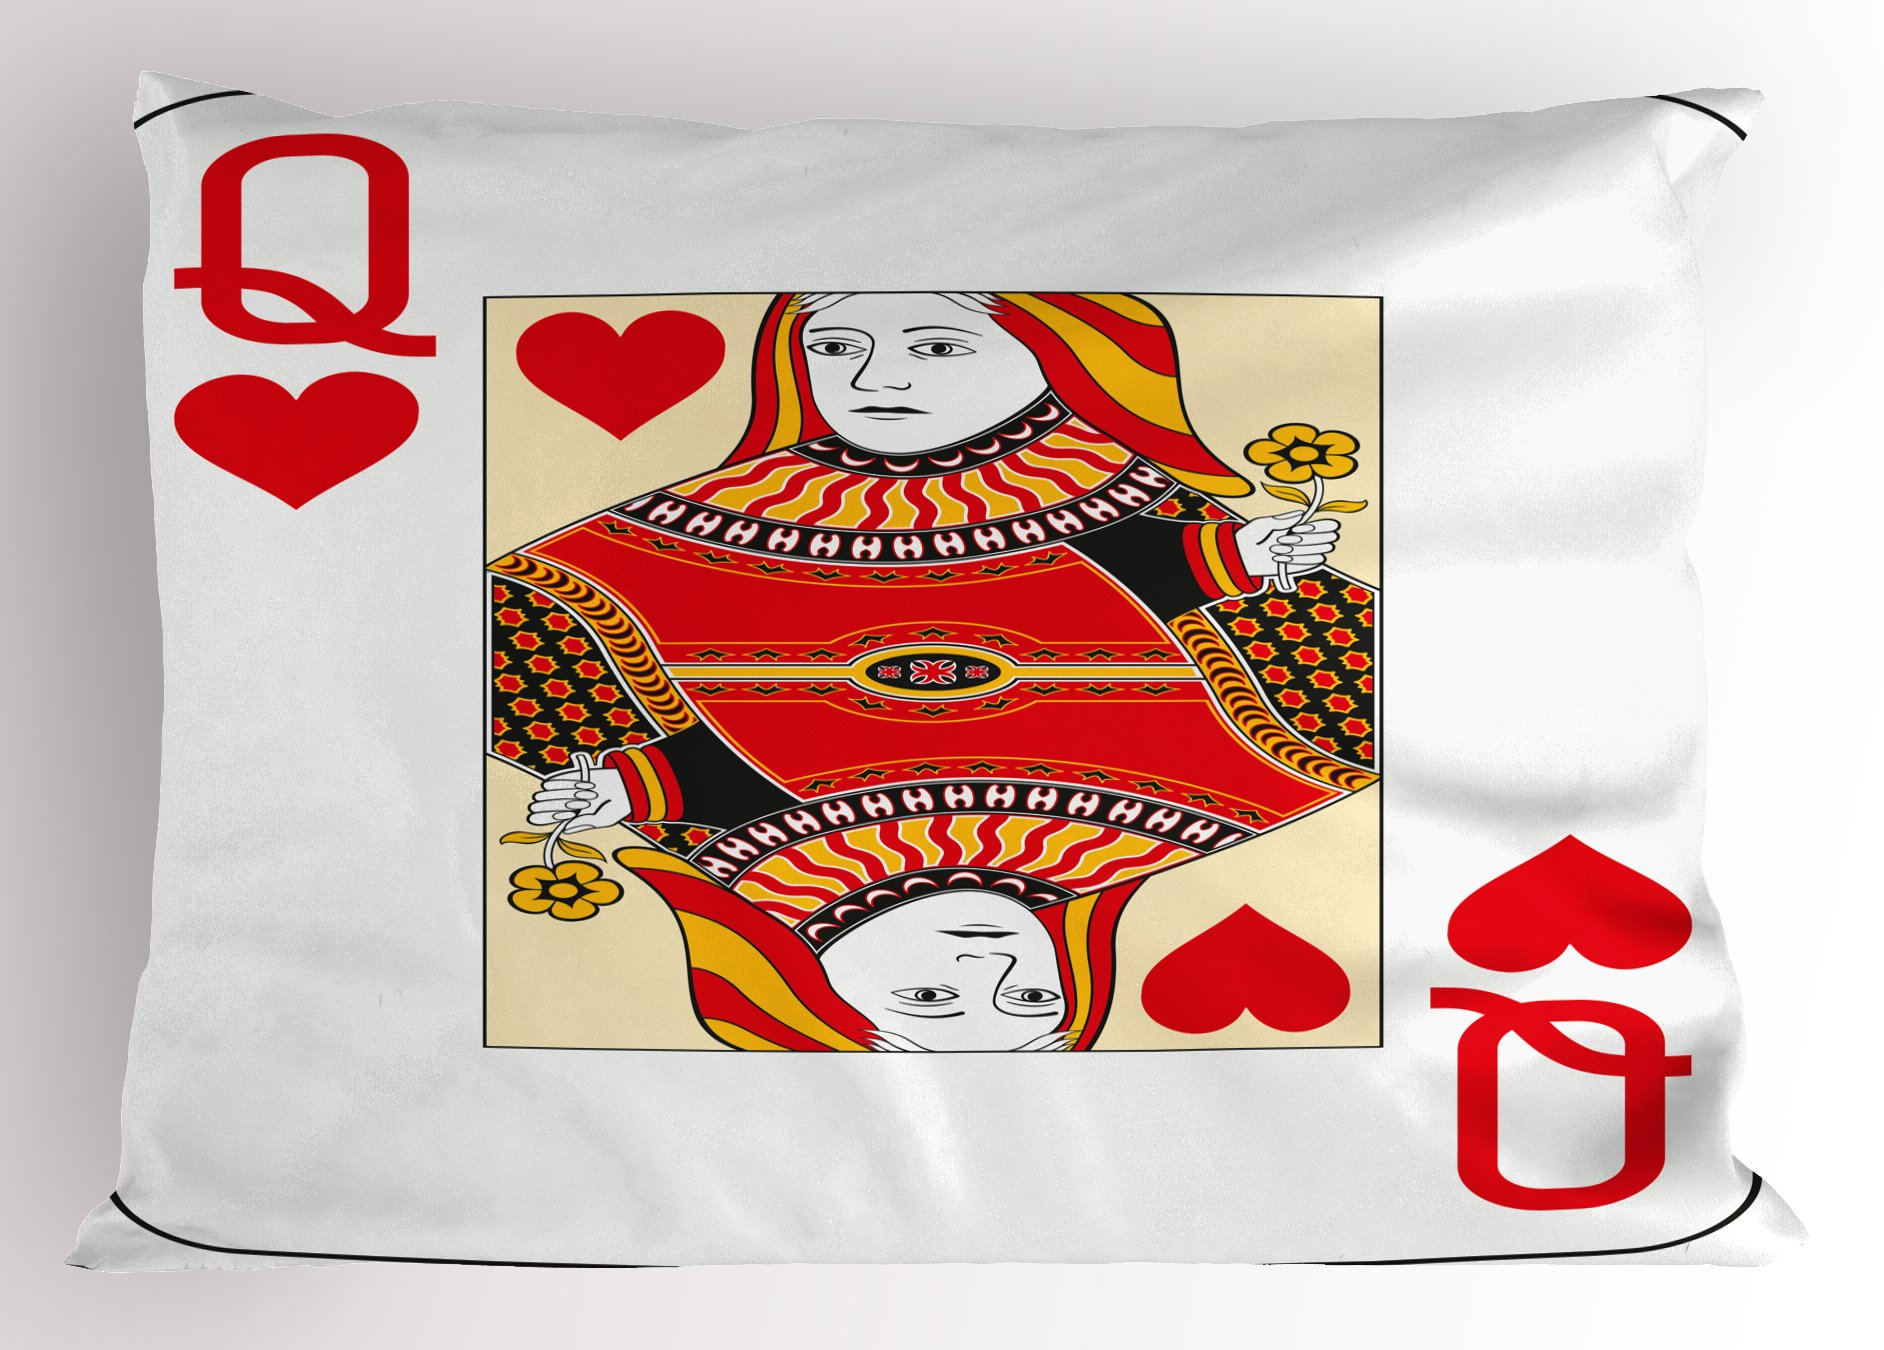 Ambesonne Queen Pillow Sham, Queen of Hearts Playing Card Casino Design Gambling Game Poker Blackjack, Decorative Standard Size Printed Pillowcase, 26 X 20 inches, Vermilion Yellow White